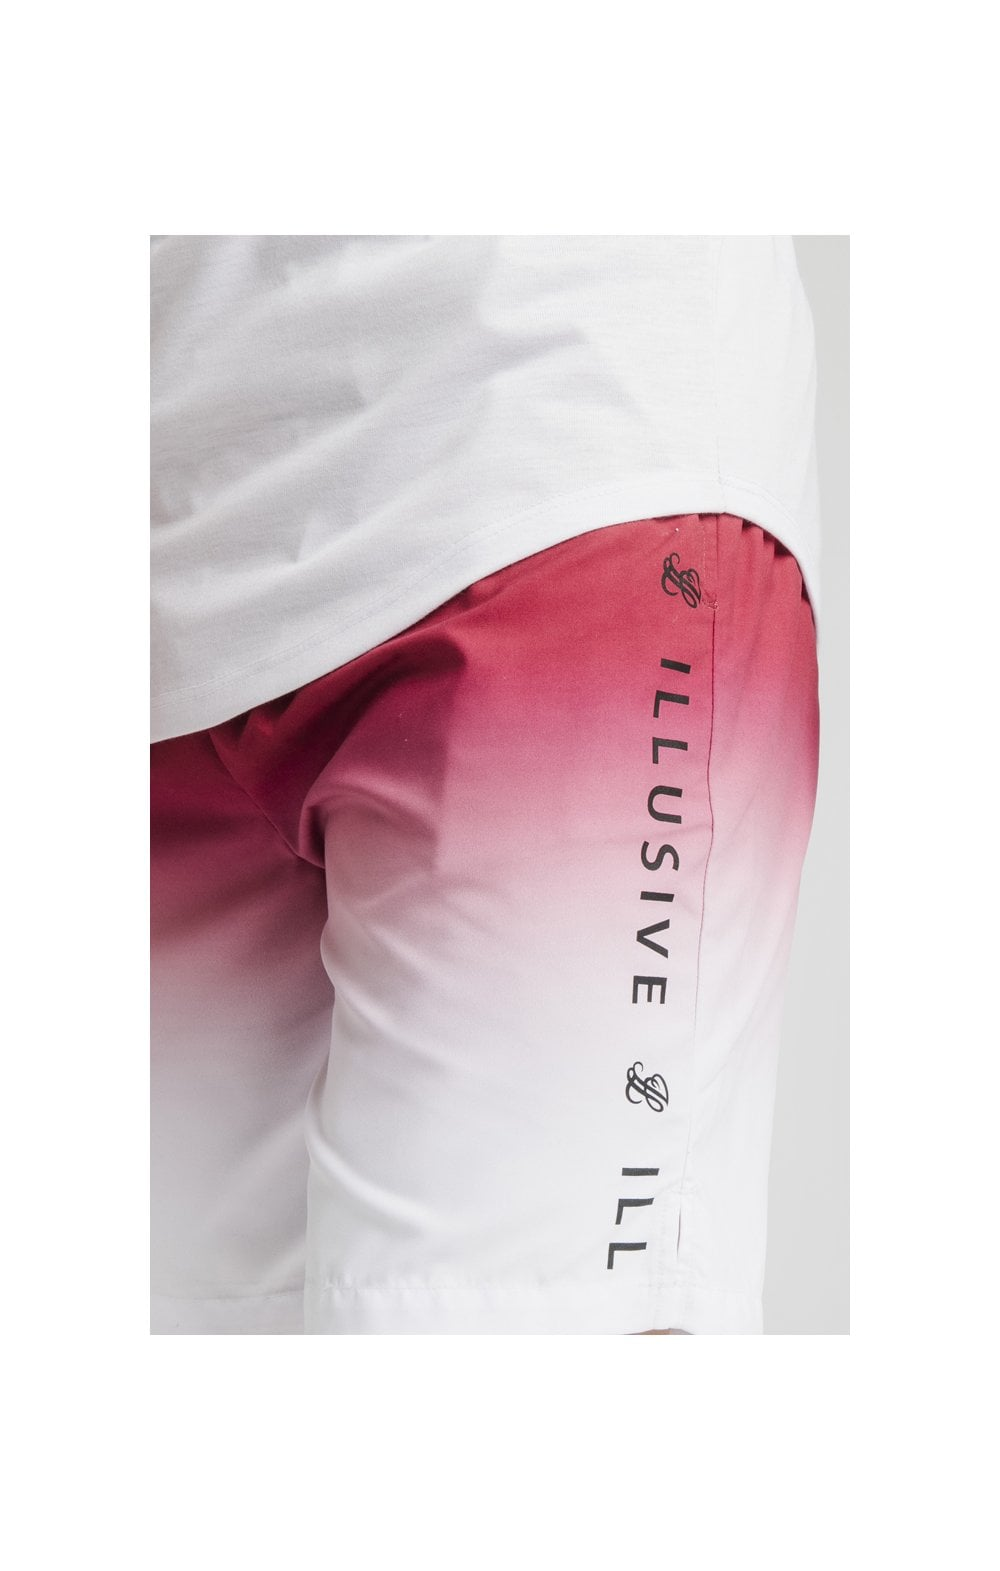 Illusive London Fade Swim Shorts - Red & White